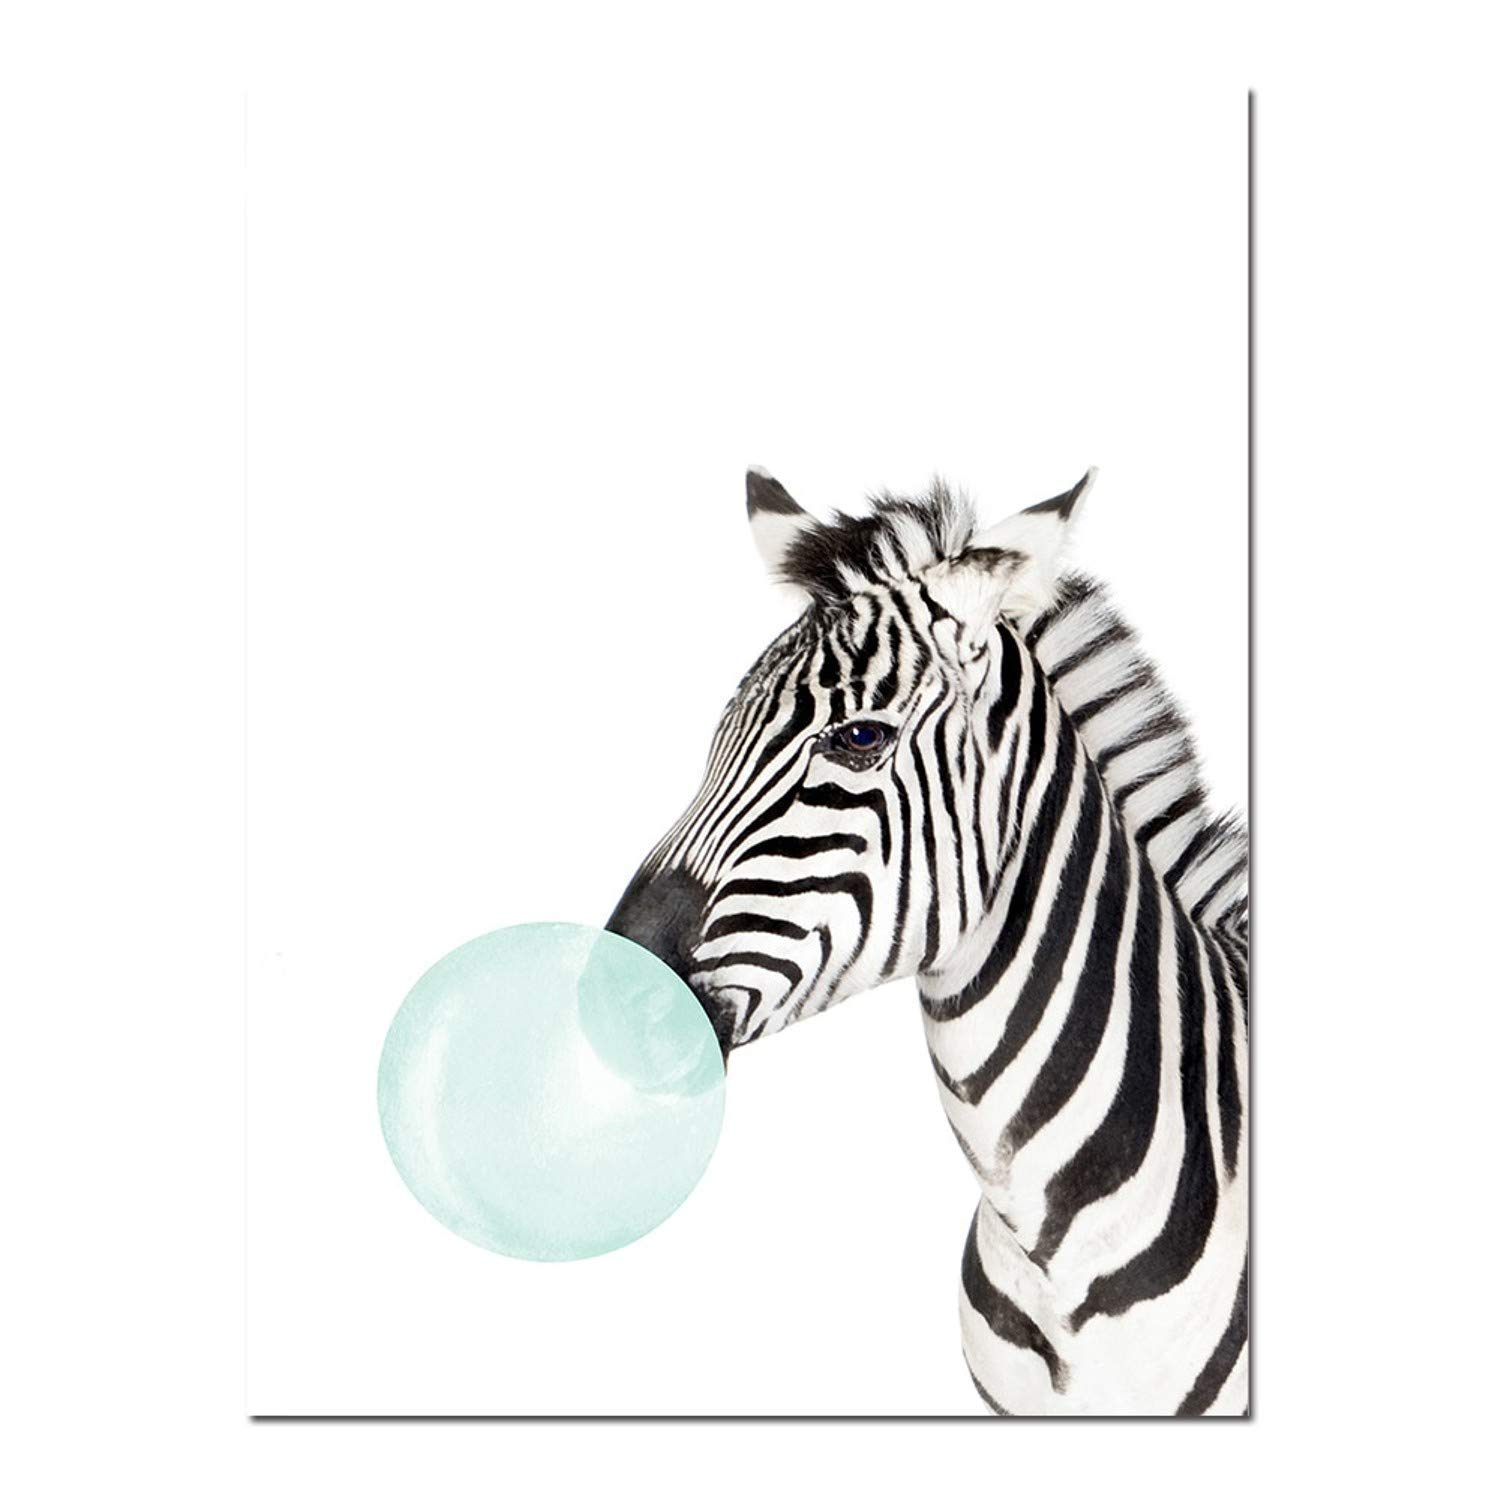 Amazon.com: Chitop Baby Animal Zebra Girafe Canvas Poster - Nursery Wall Art Print Painting Nordic Picture Children Bedroom Decoration (7) (30x40cm): ...